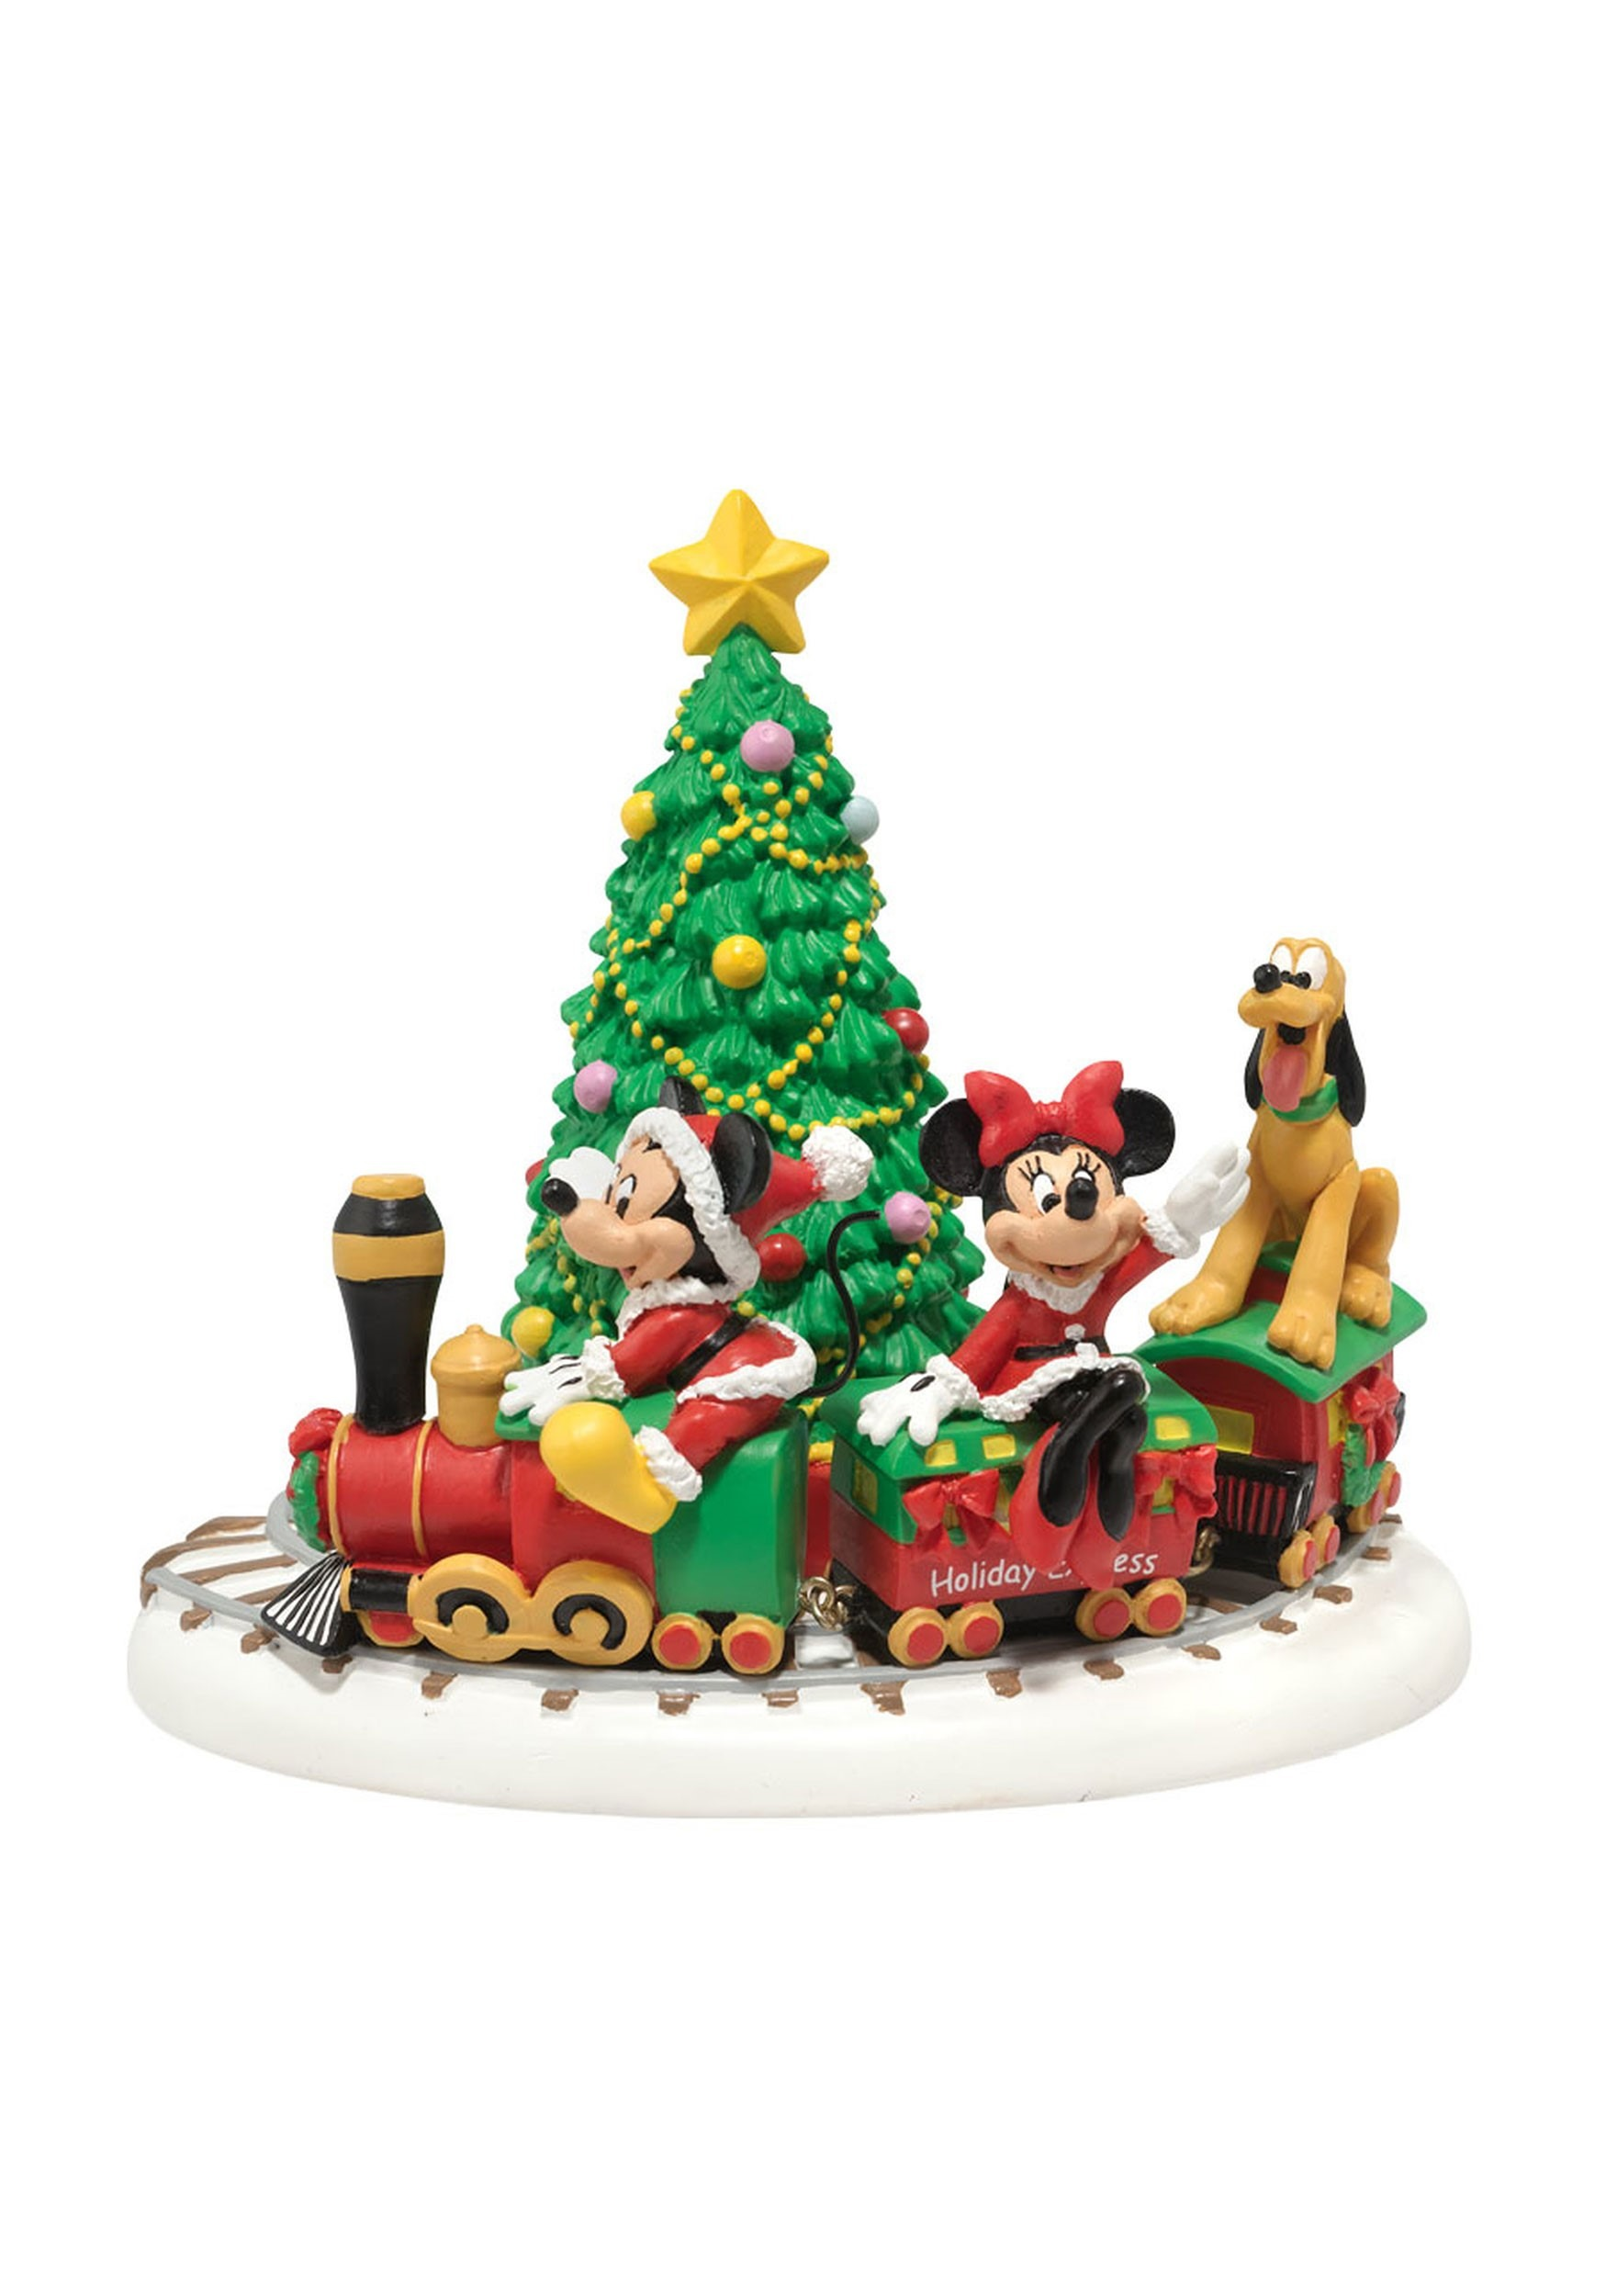 Mickeys Holiday Express Department 56 Collectible